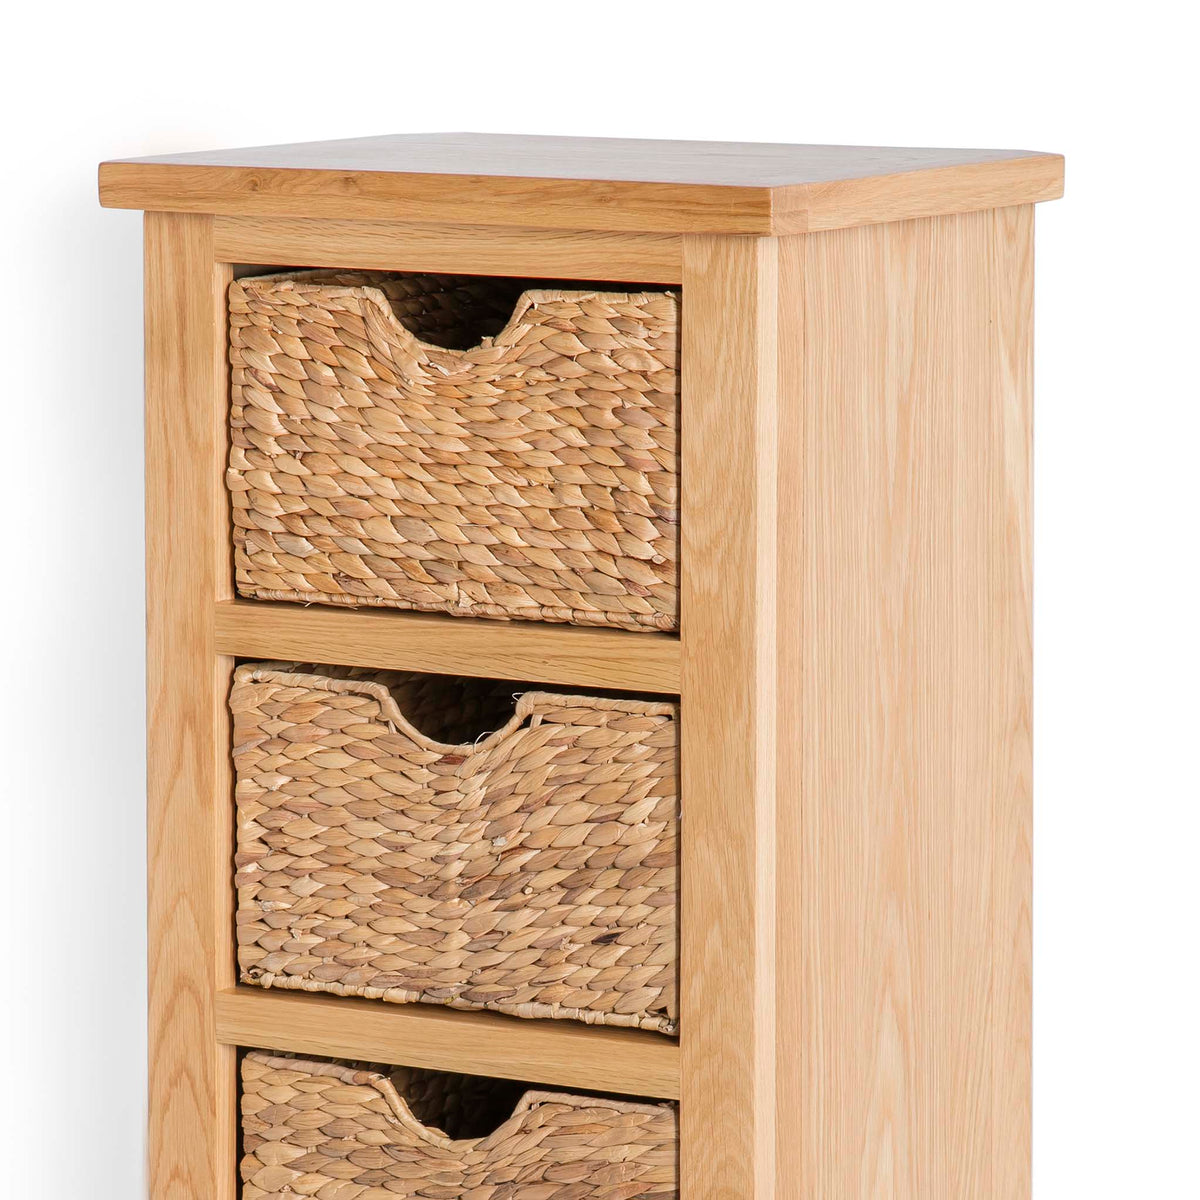 London Oak Tallboy with Baskets - Close up of top of tallboy